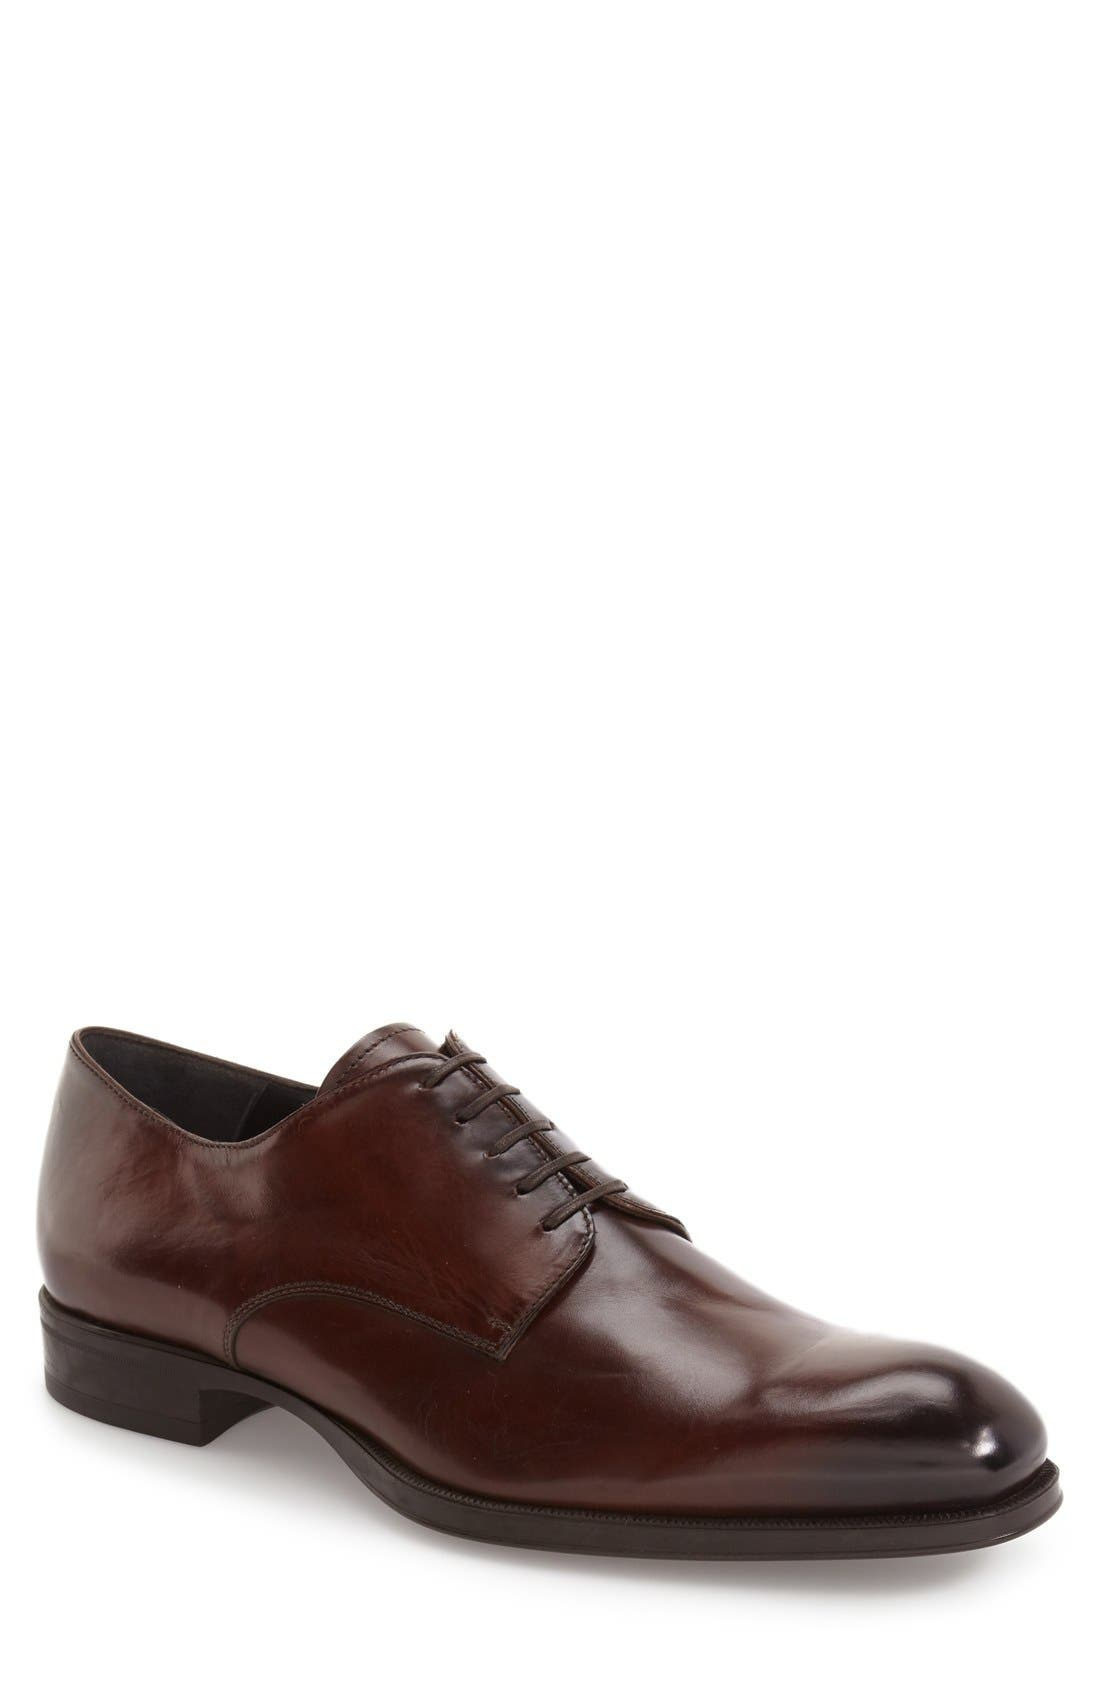 'Buchanan' Plain Toe Derby,                             Main thumbnail 1, color,                             Mogano